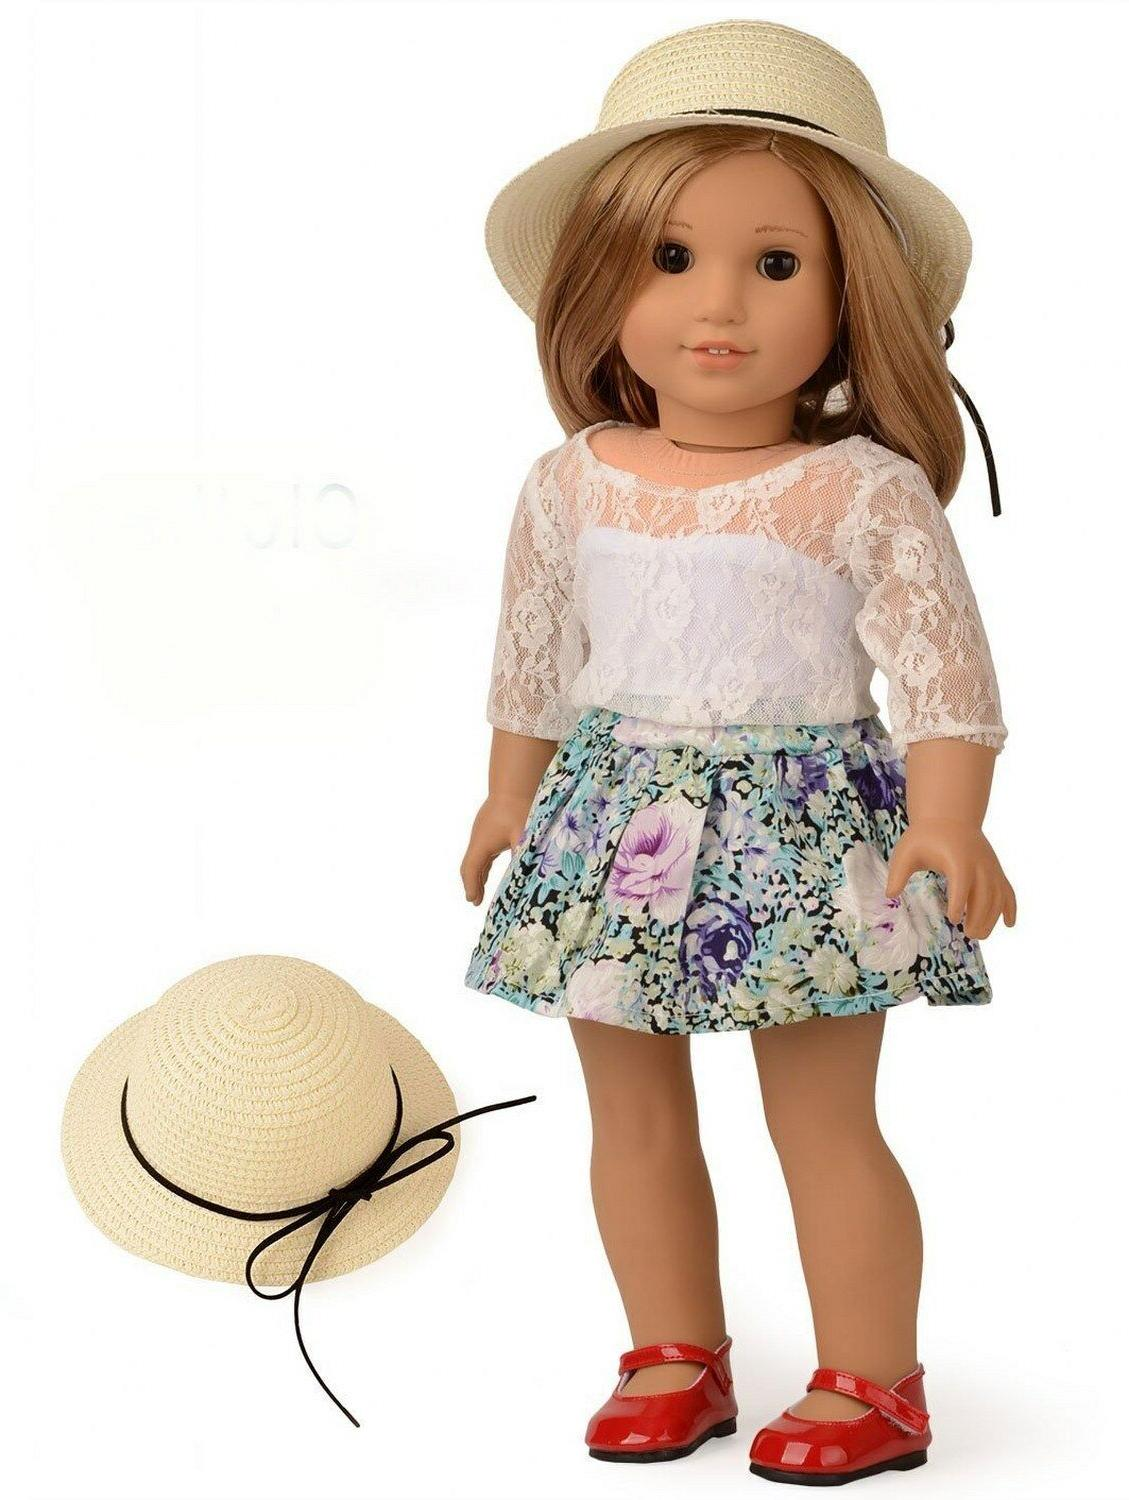 Doll Floral Set 18 Include